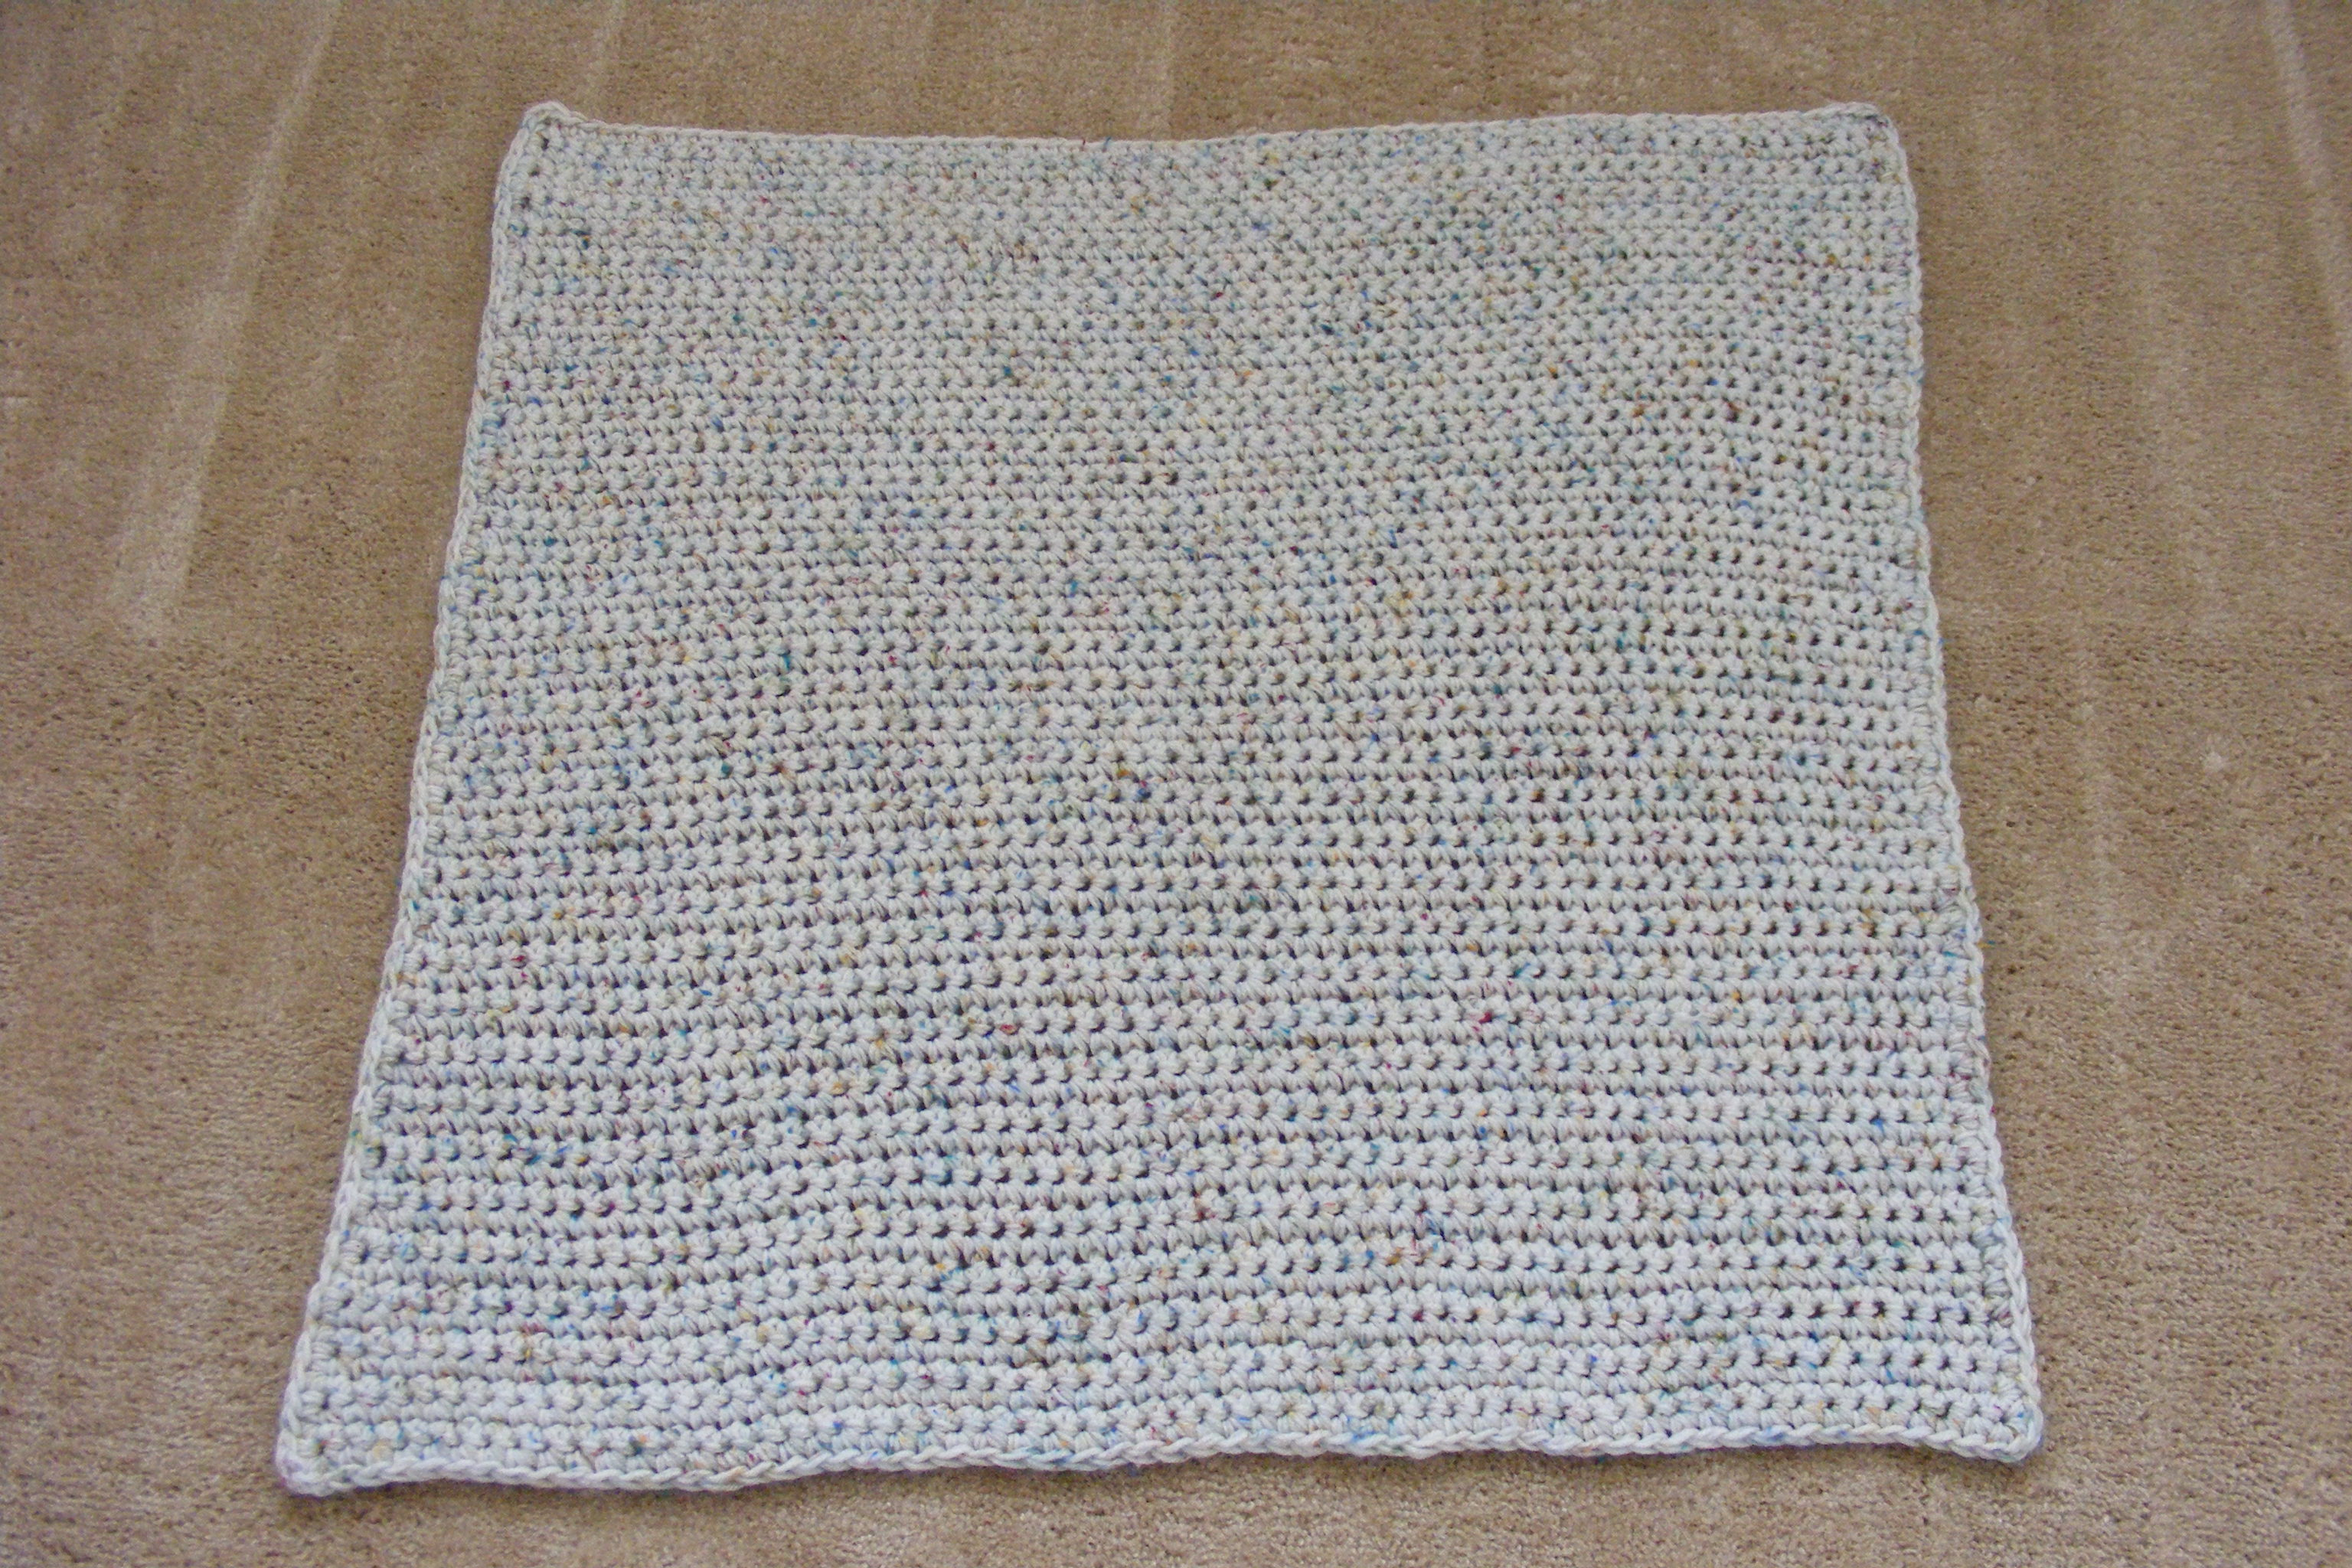 Single Crochet Baby Blanket Pattern Gretchkals Yarny Adventures